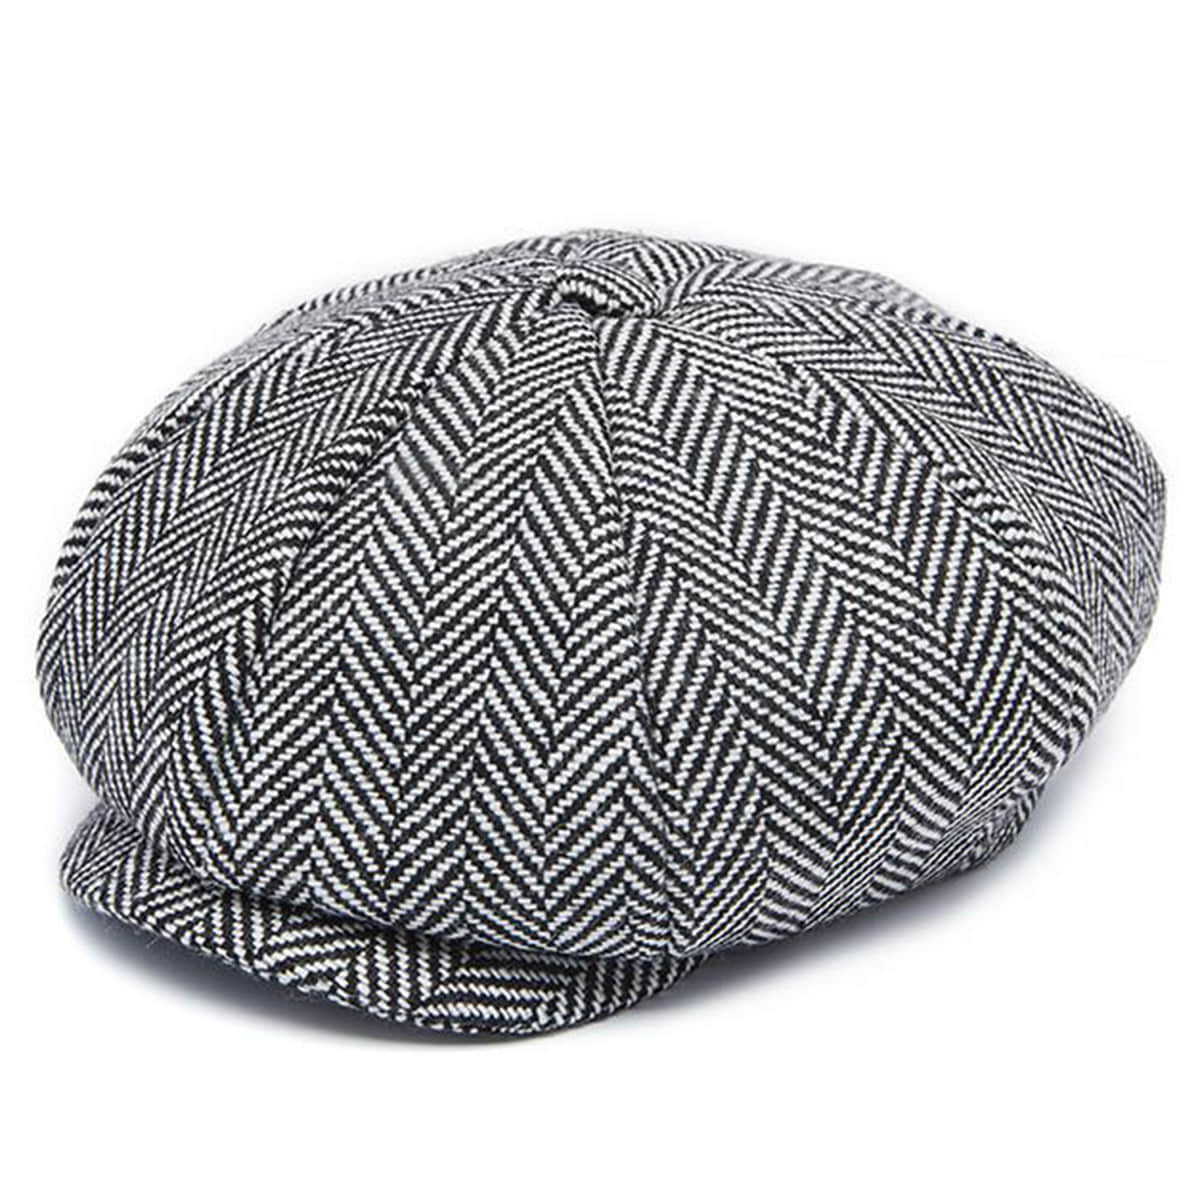 Millionairehats - wool herringbone big apple hat